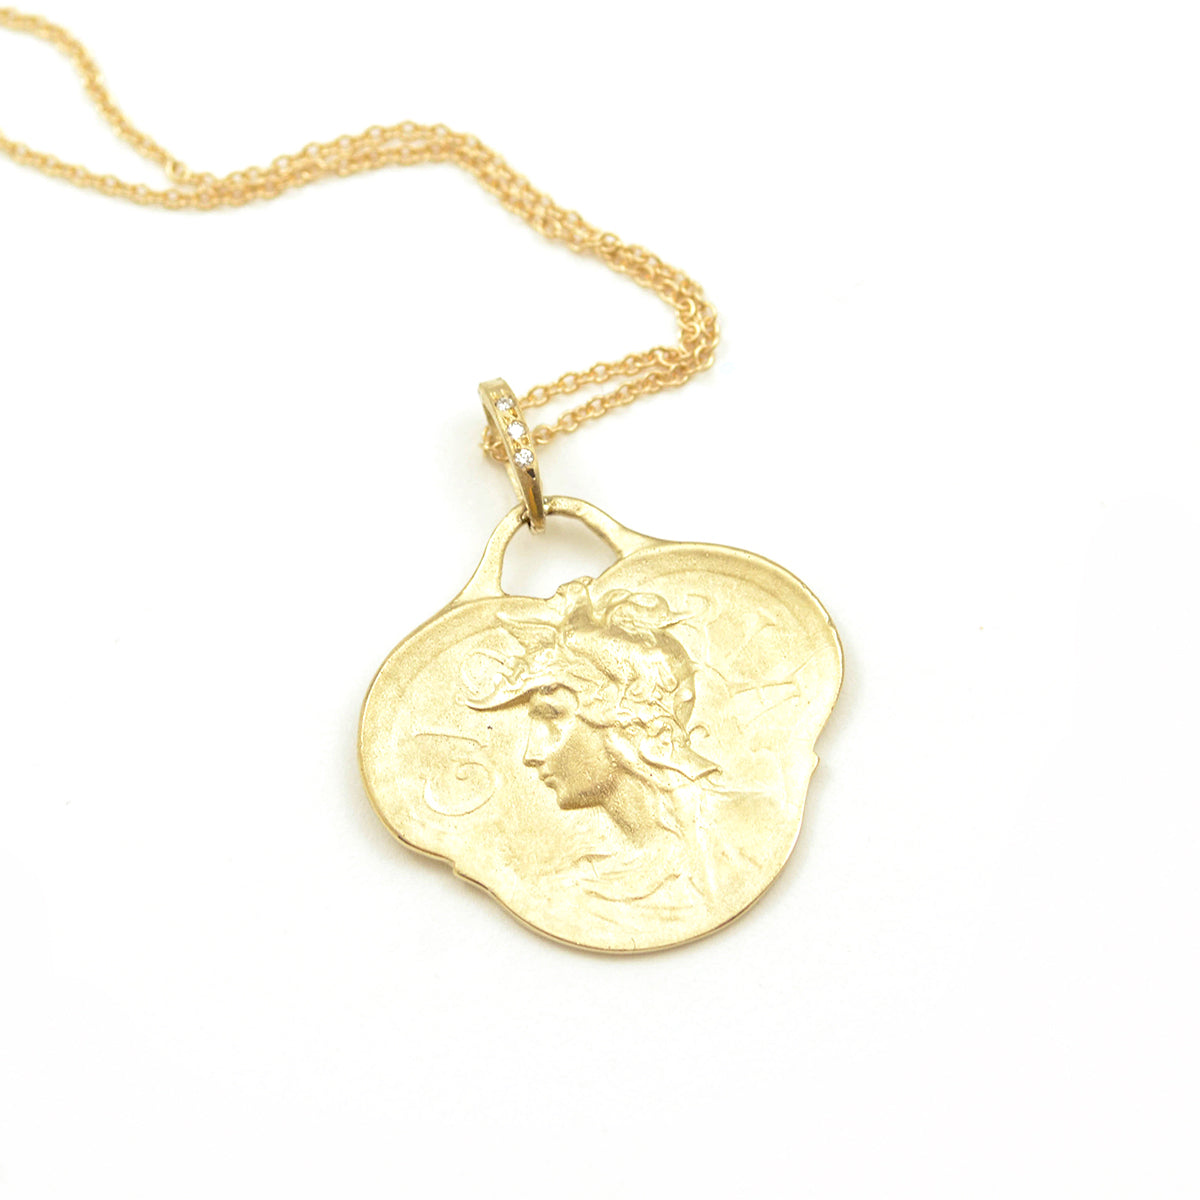 Hermes Pendant Necklace